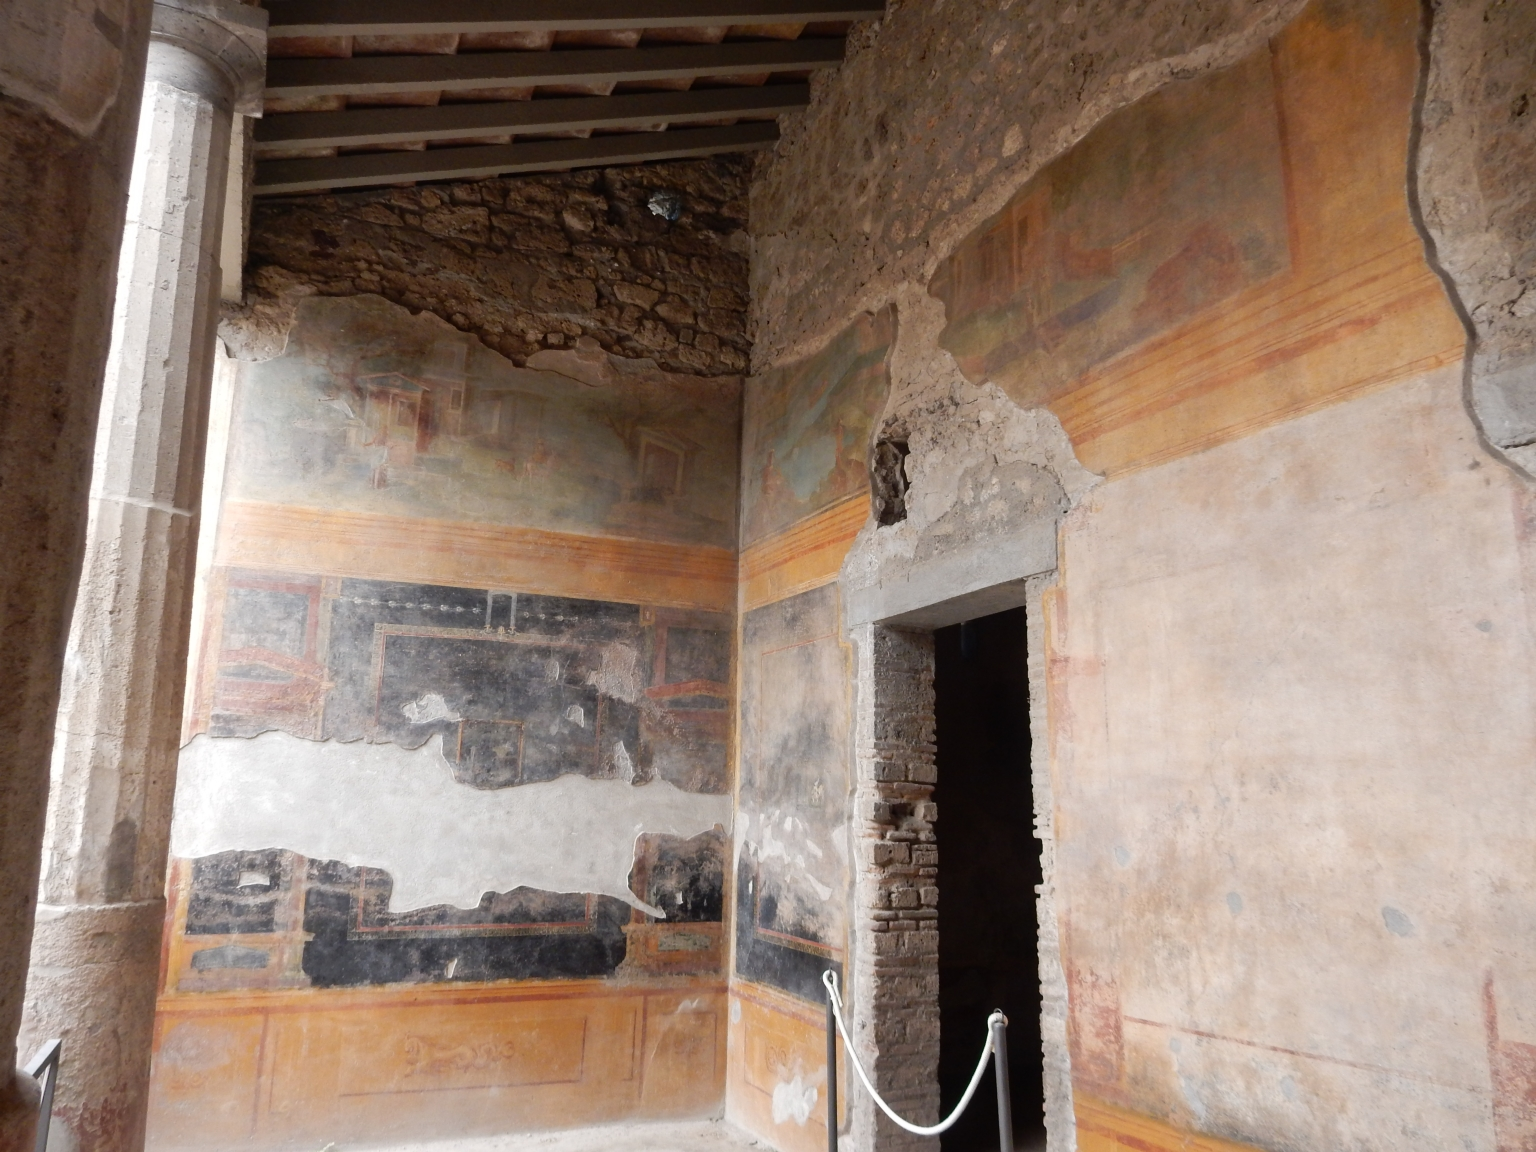 VI.8.23 Pompeii. May 2017. Looking towards the north-west corner of north portico with doorway to room, on right. Photo courtesy of Buzz Ferebee.